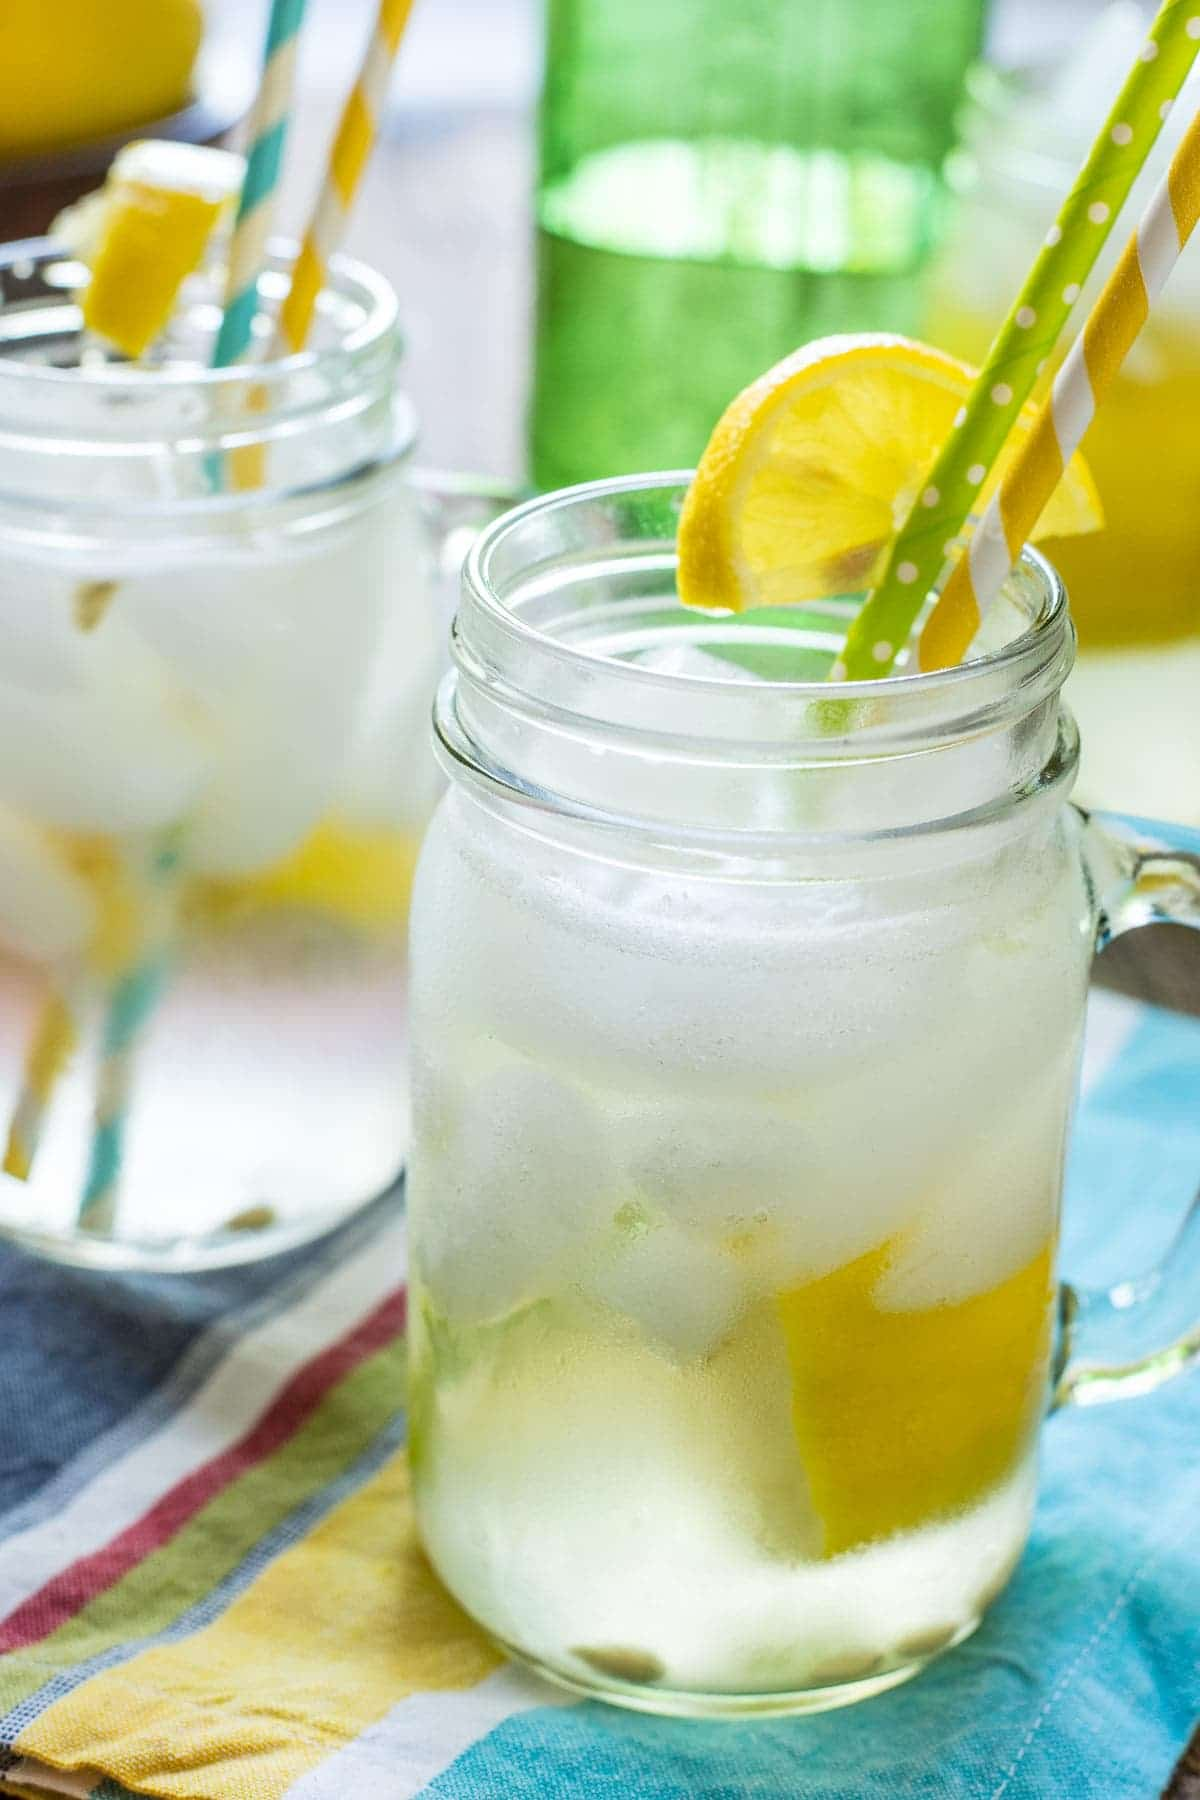 Now you can have all the flavor of a summer festival at your house. This Homemade Lemon Shake Up Recipe is fabulous and so easy to make!